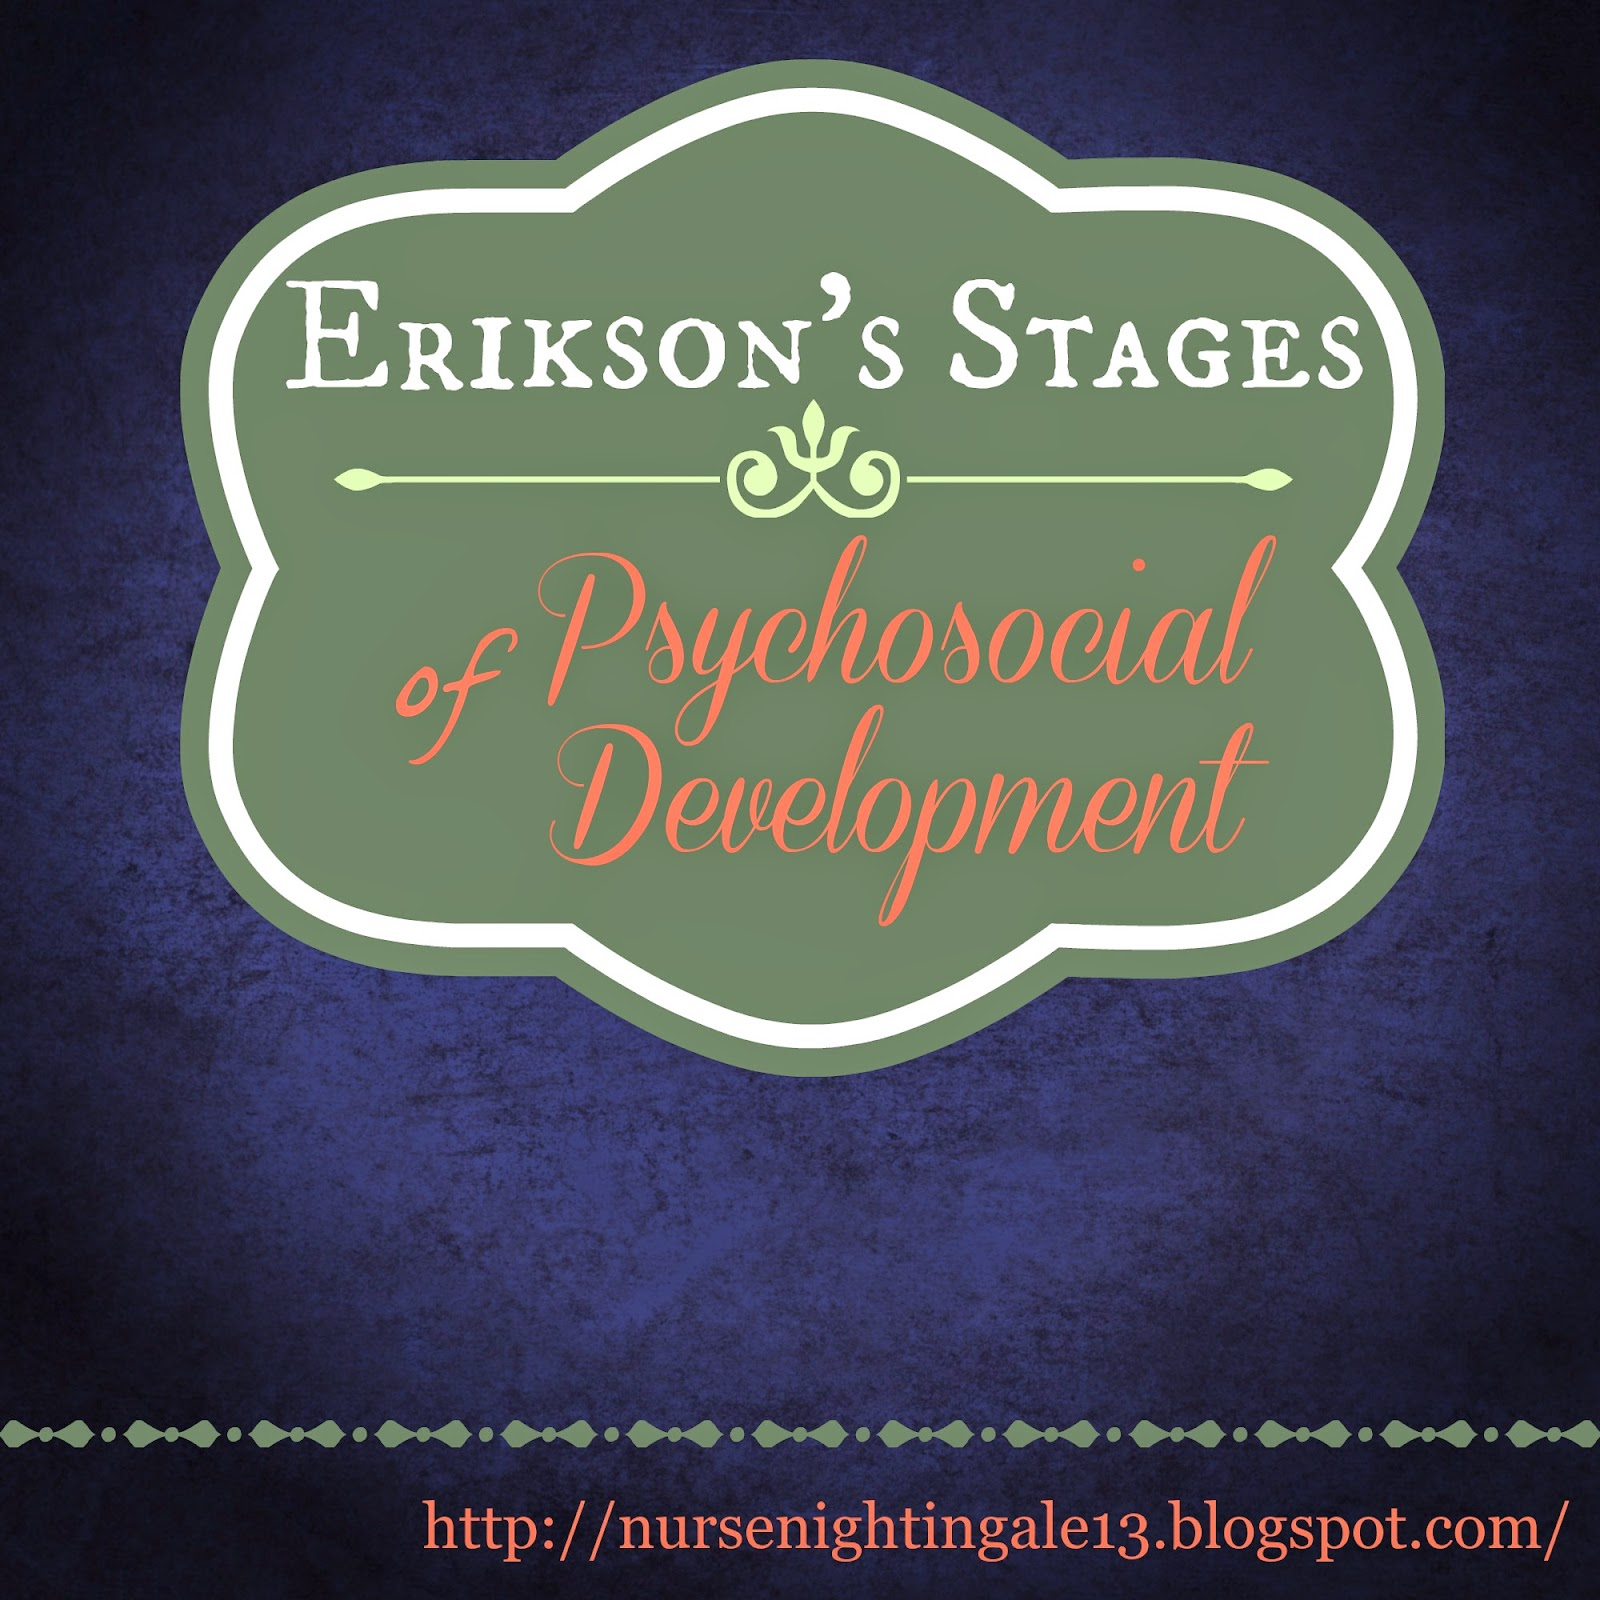 Erik Erikson, psychosocial development, nursing, lifetime, NCLEX, pediatrics, gerontology